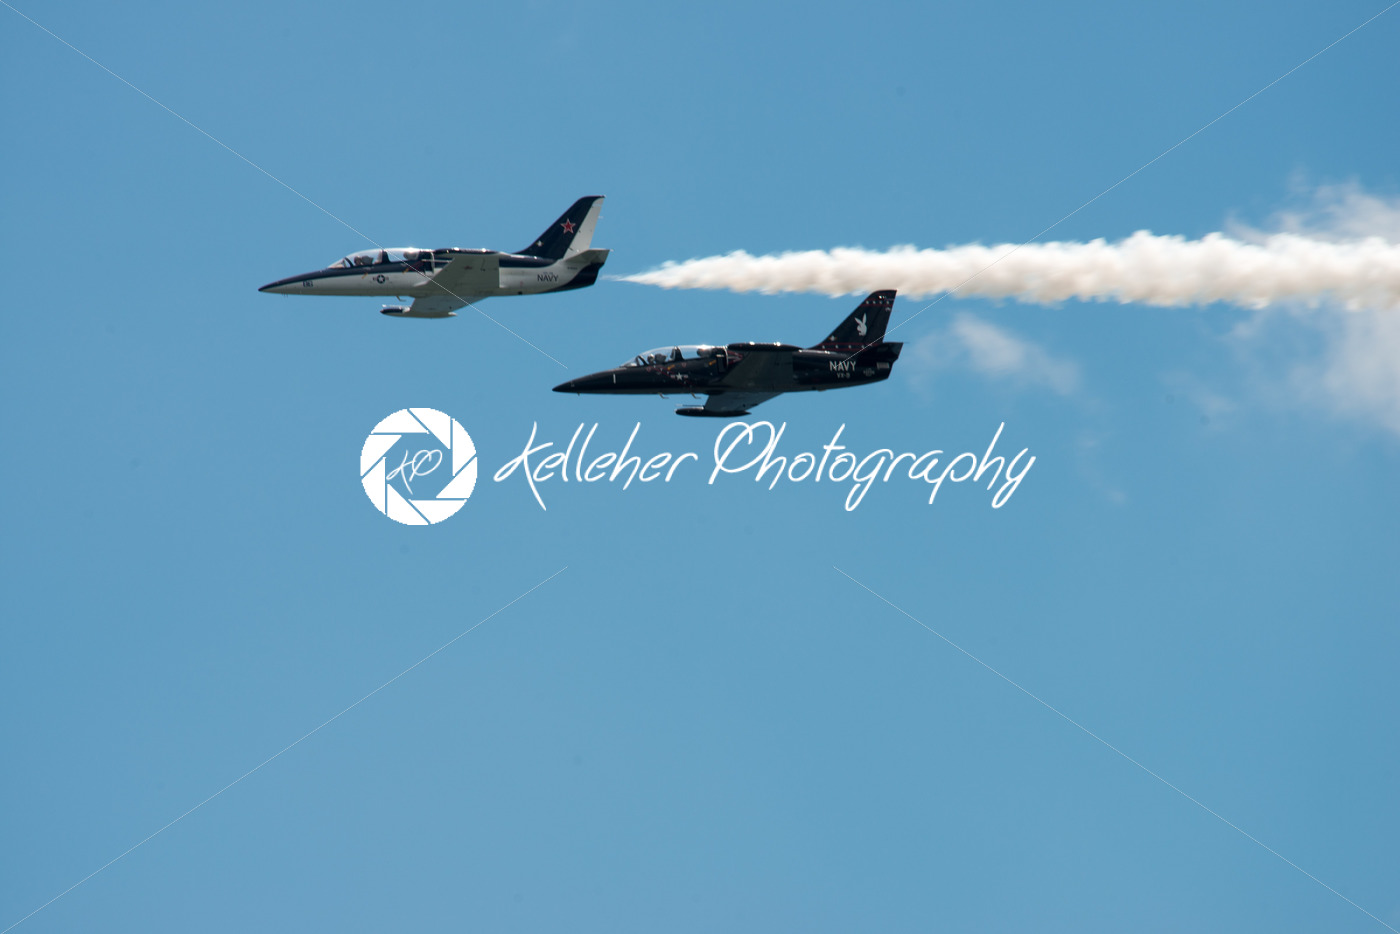 ATLANTIC CITY, NJ – AUGUST 17: Navy Jet at Annual Atlantic City Air Show on August 17, 2016 - Kelleher Photography Store